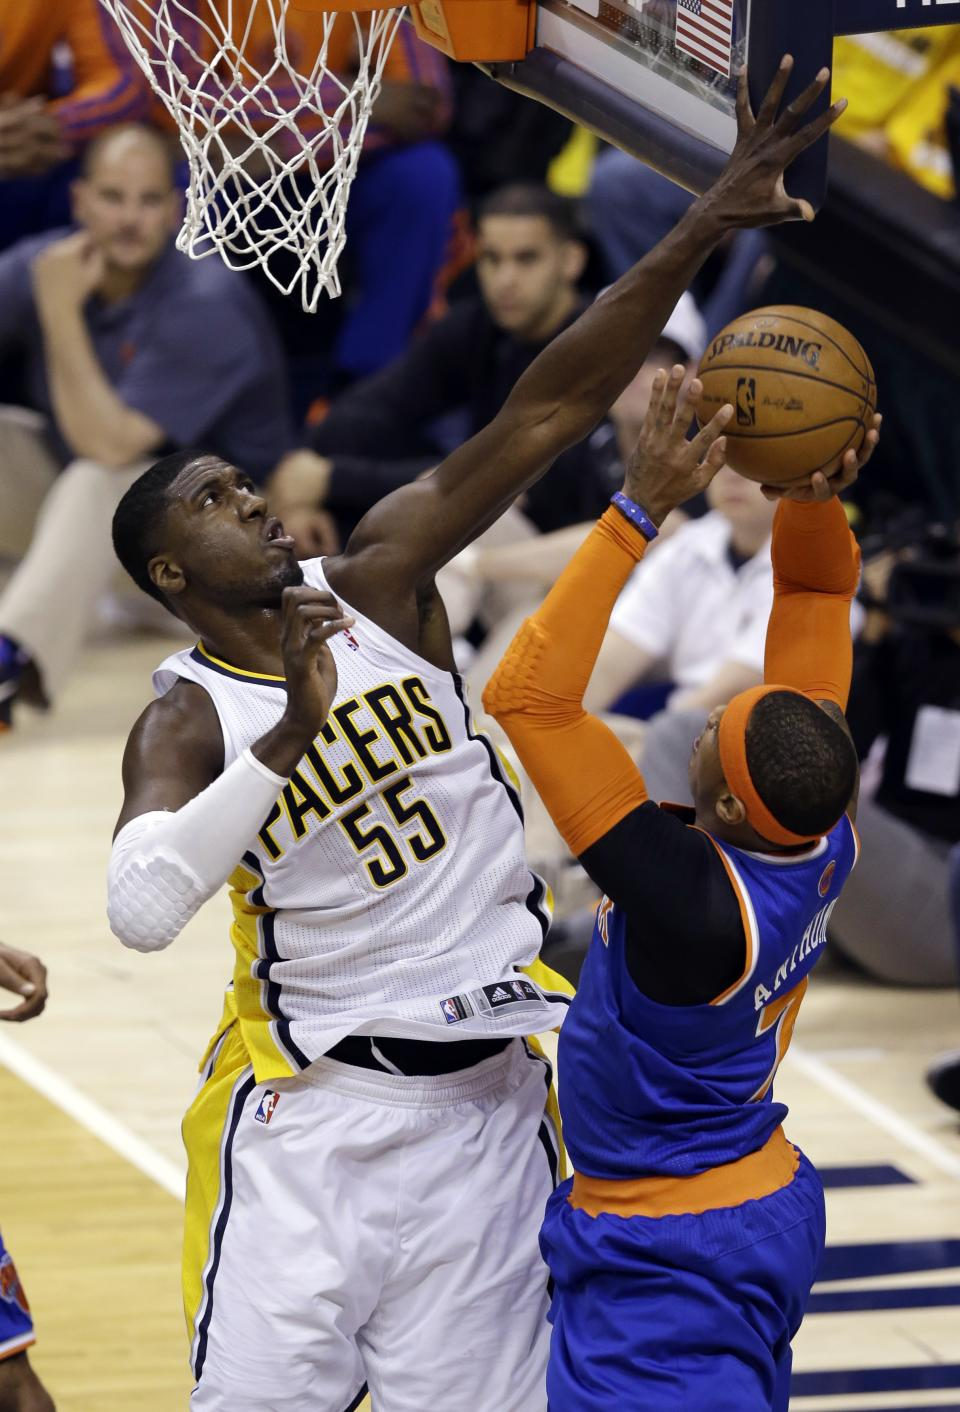 Indiana Pacers center Roy Hibbert, left, fouls New York Knicks forward Carmelo Anthony who shoots during the first half of Game 3 of the Eastern Conference semifinal NBA basketball playoff series in Indianapolis, Saturday, May 11, 2013. (AP Photo/Michael Conroy)